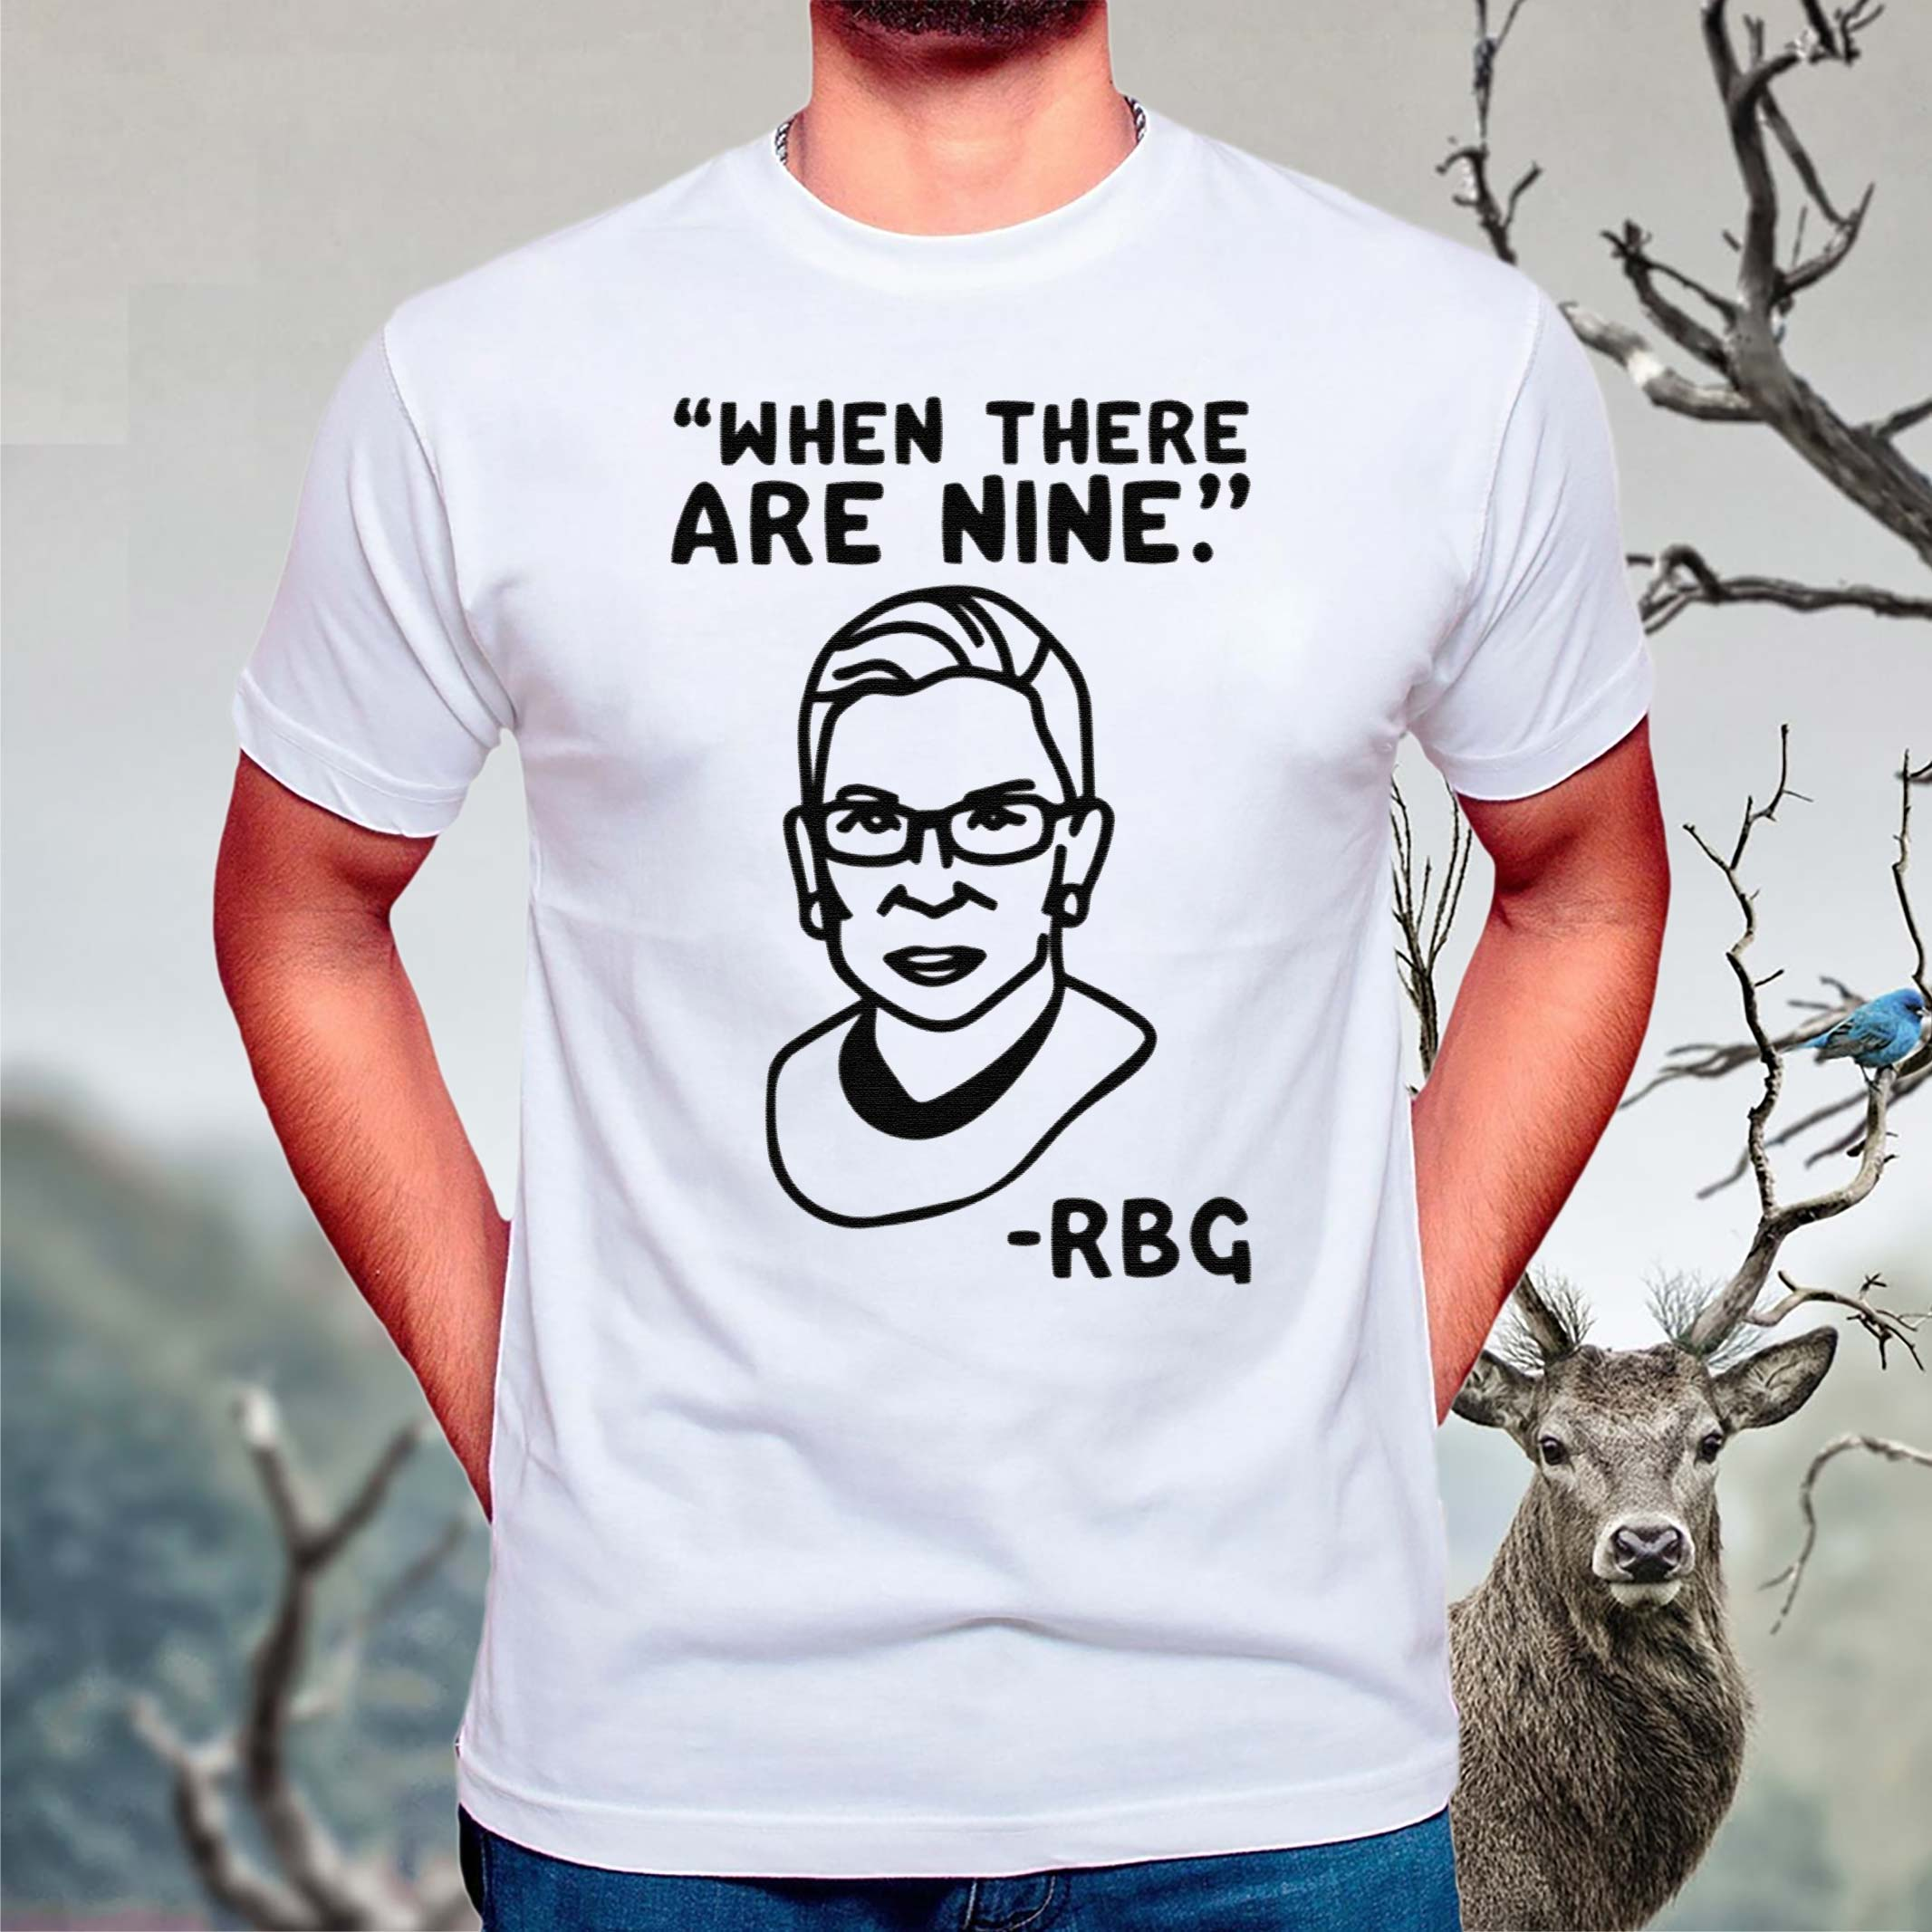 when-there-are-nine-rbg-t-shirt